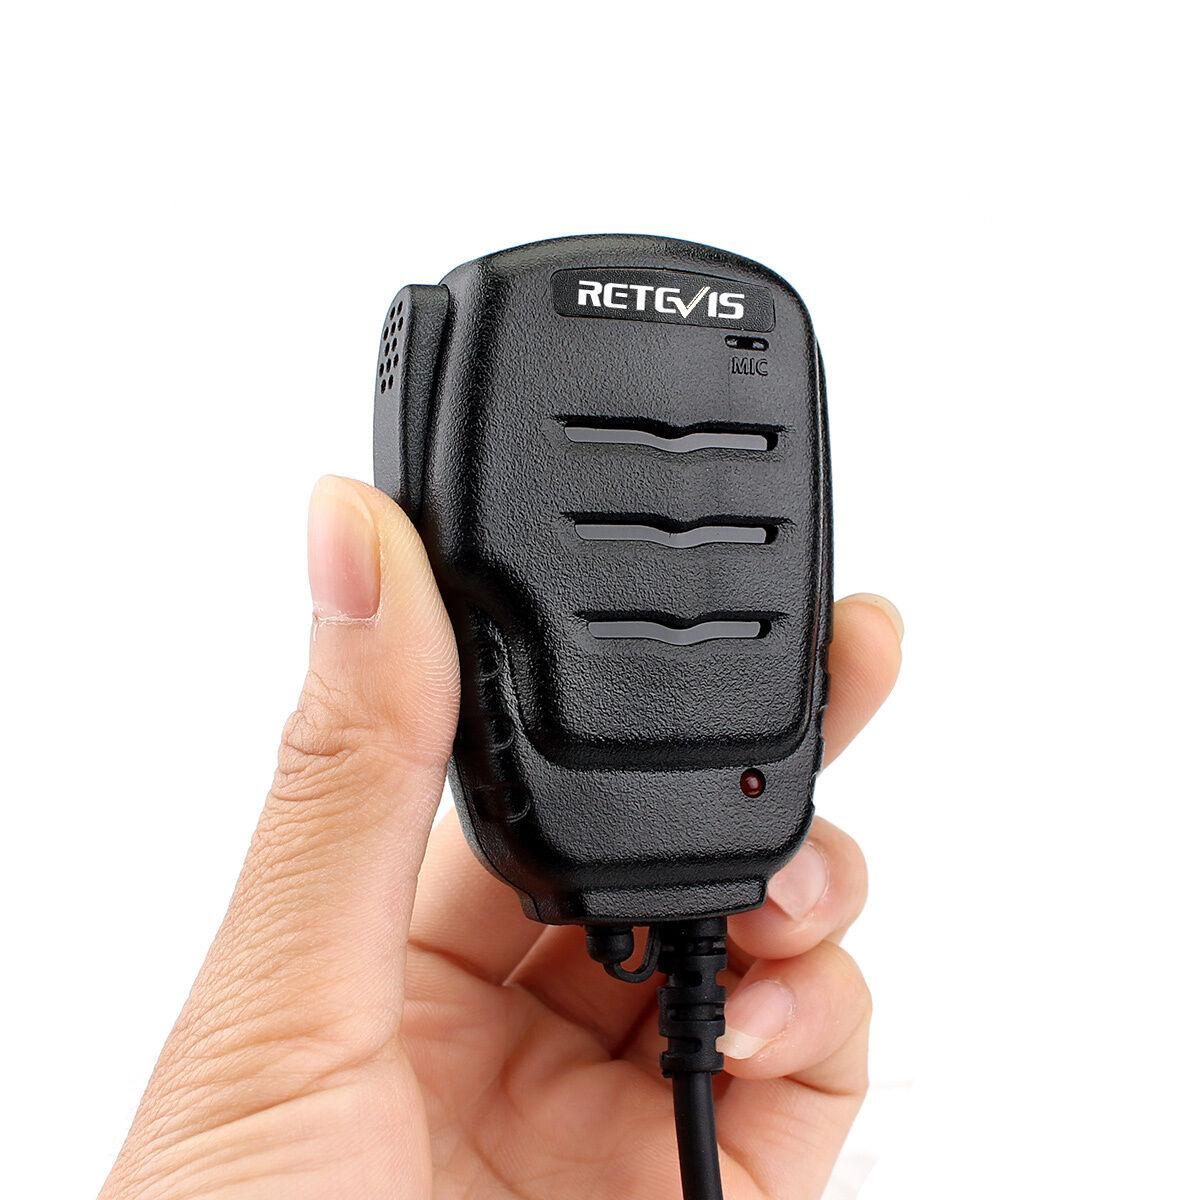 2PIN Retevis RS-111 Remote Speaker Microphone for H777 Baofeng UV5R RT21 Kenwood